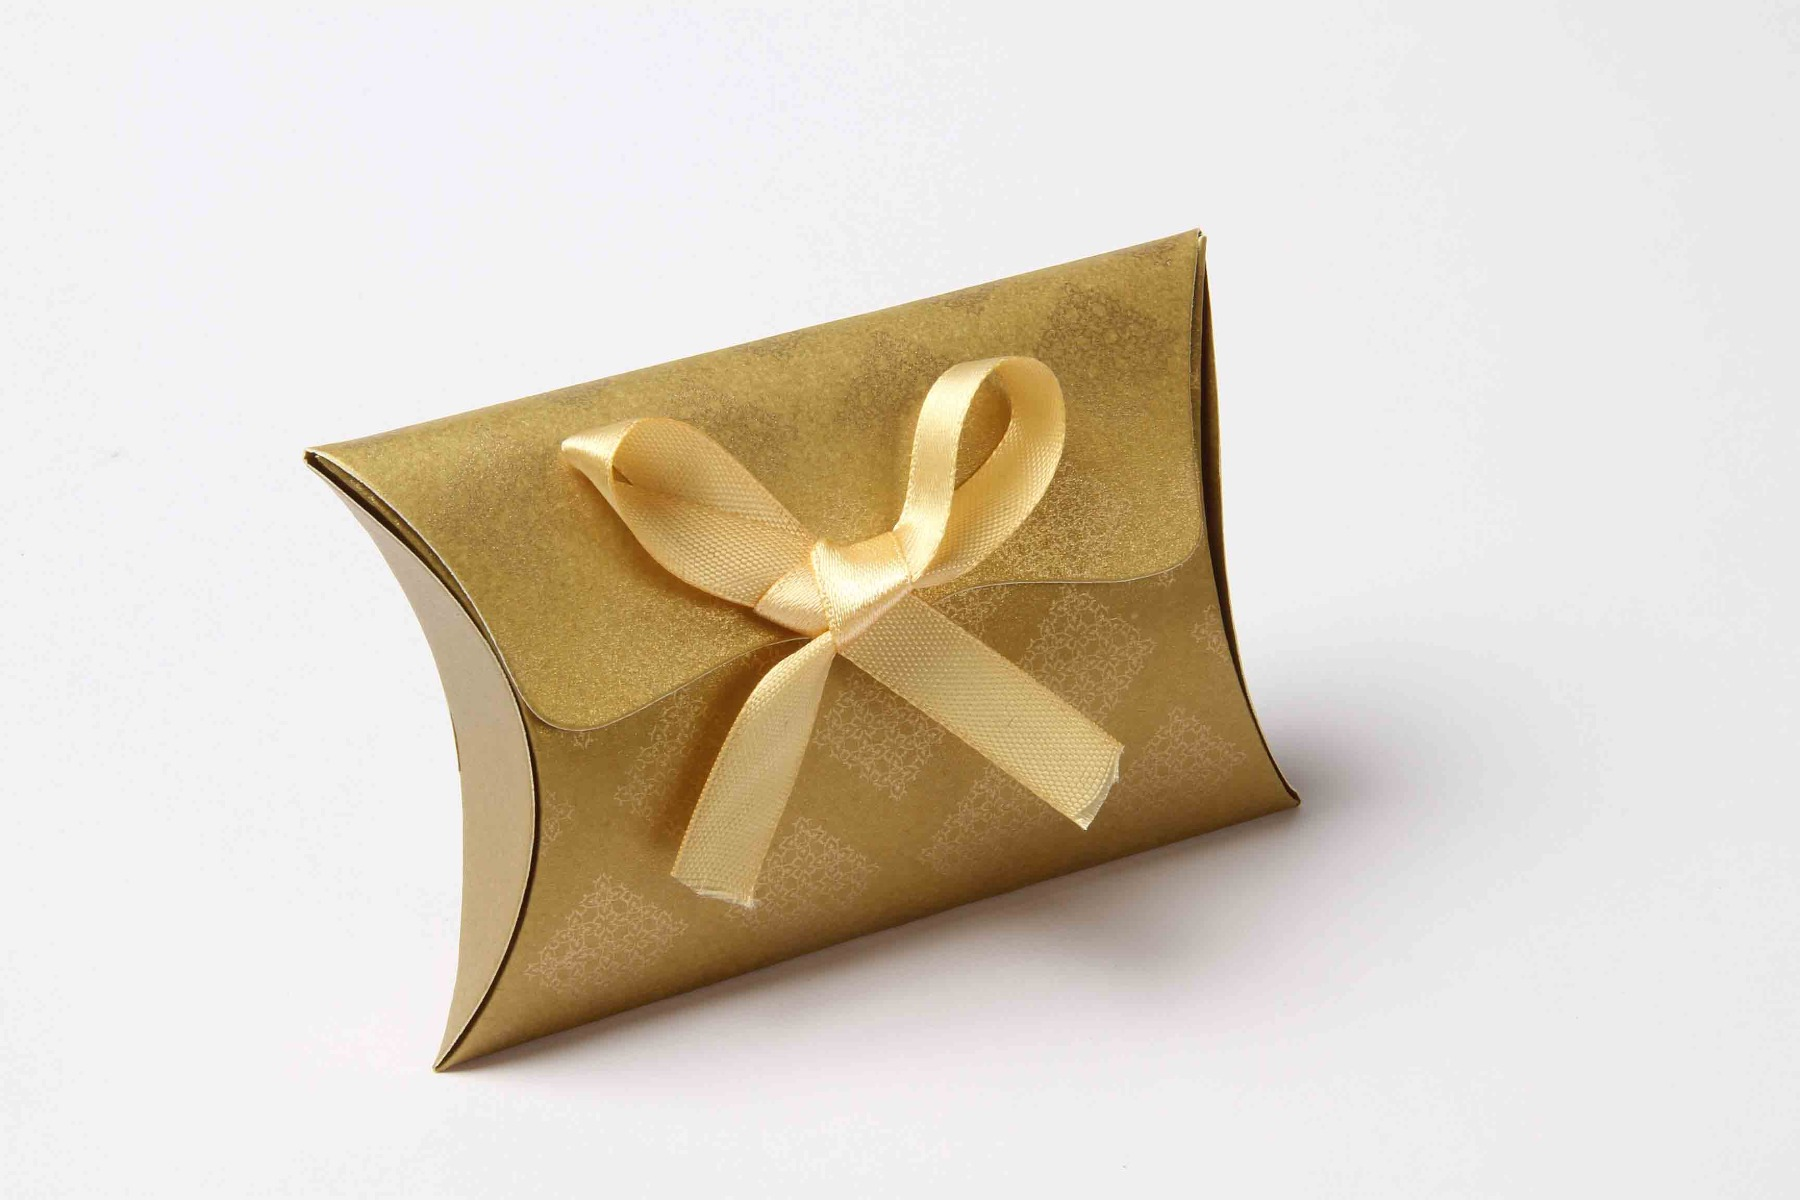 Pillow Favor Box No 9 - Golden-8680